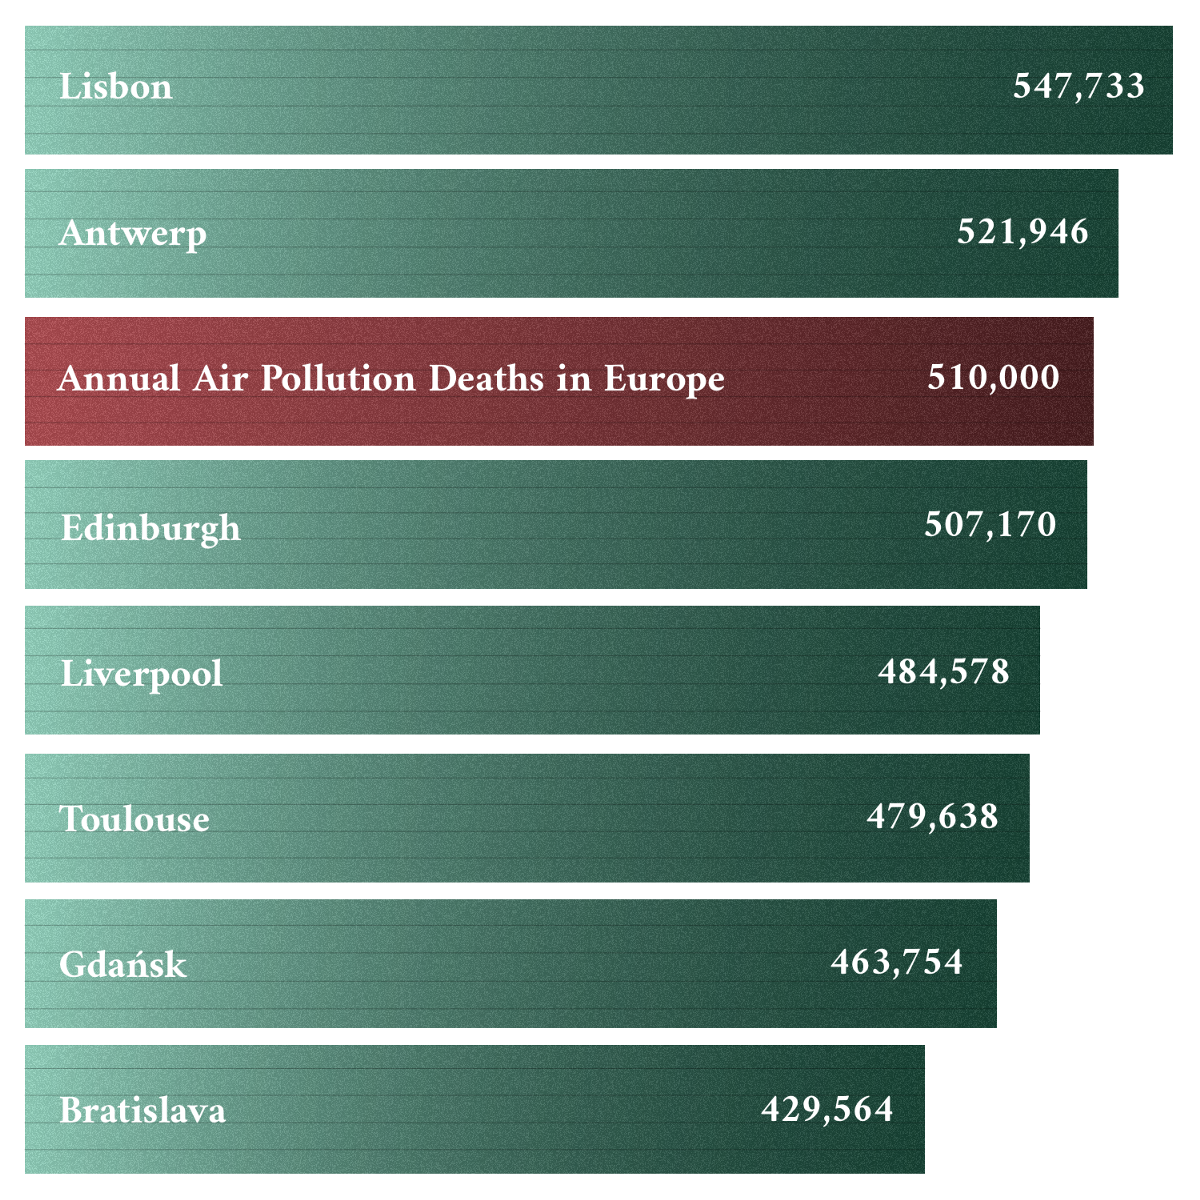 The number of EU residents who die each year due to air pollution is greater than the populations of various midsize European cities. Data: European Court of Auditors / Wikipedia